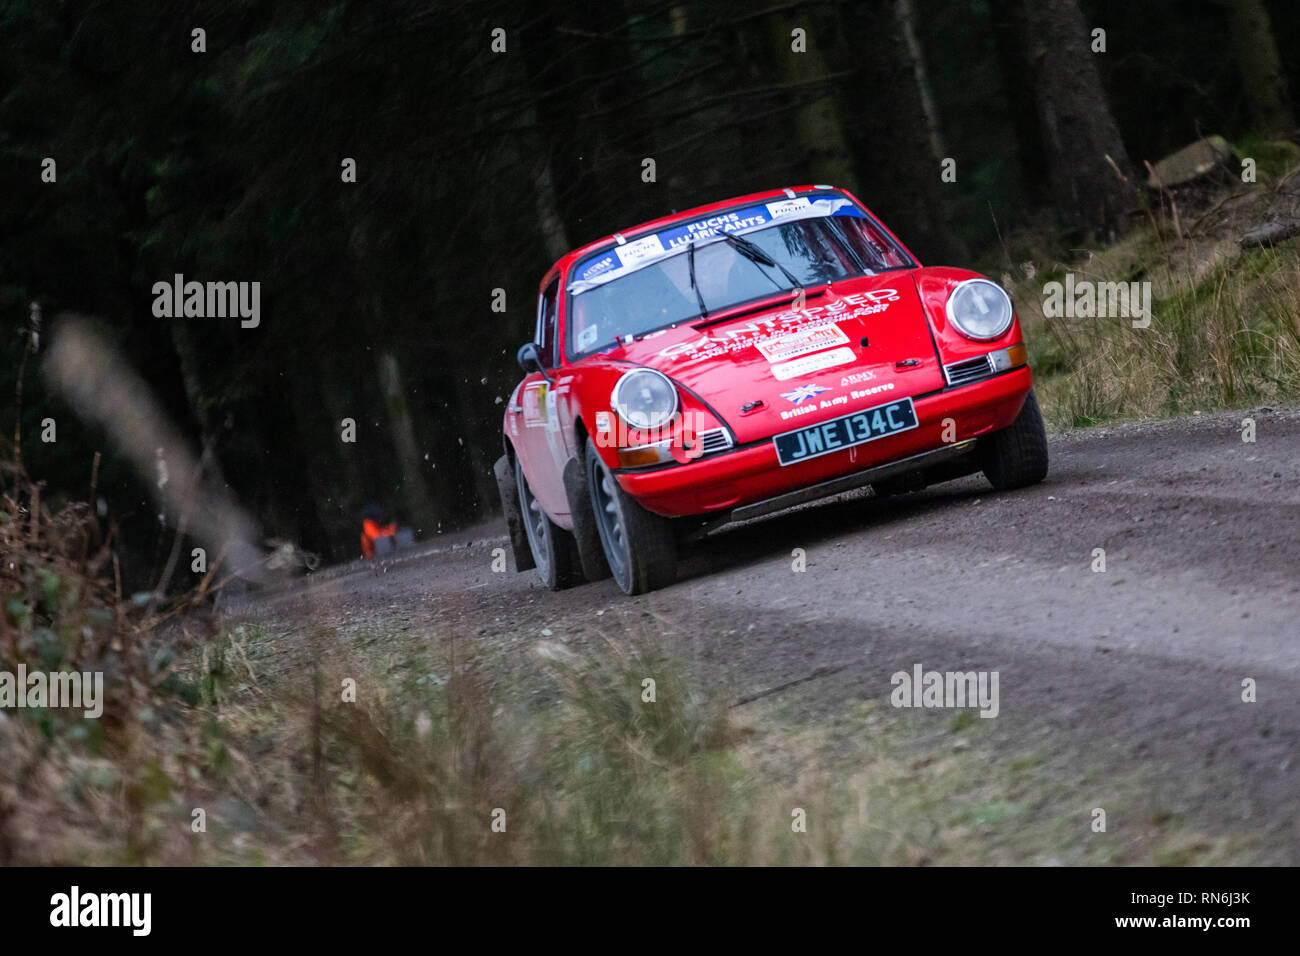 Rally car competing in the 2019 Cambrian Rally, in Alwen Forest, North Wales - Stock Image